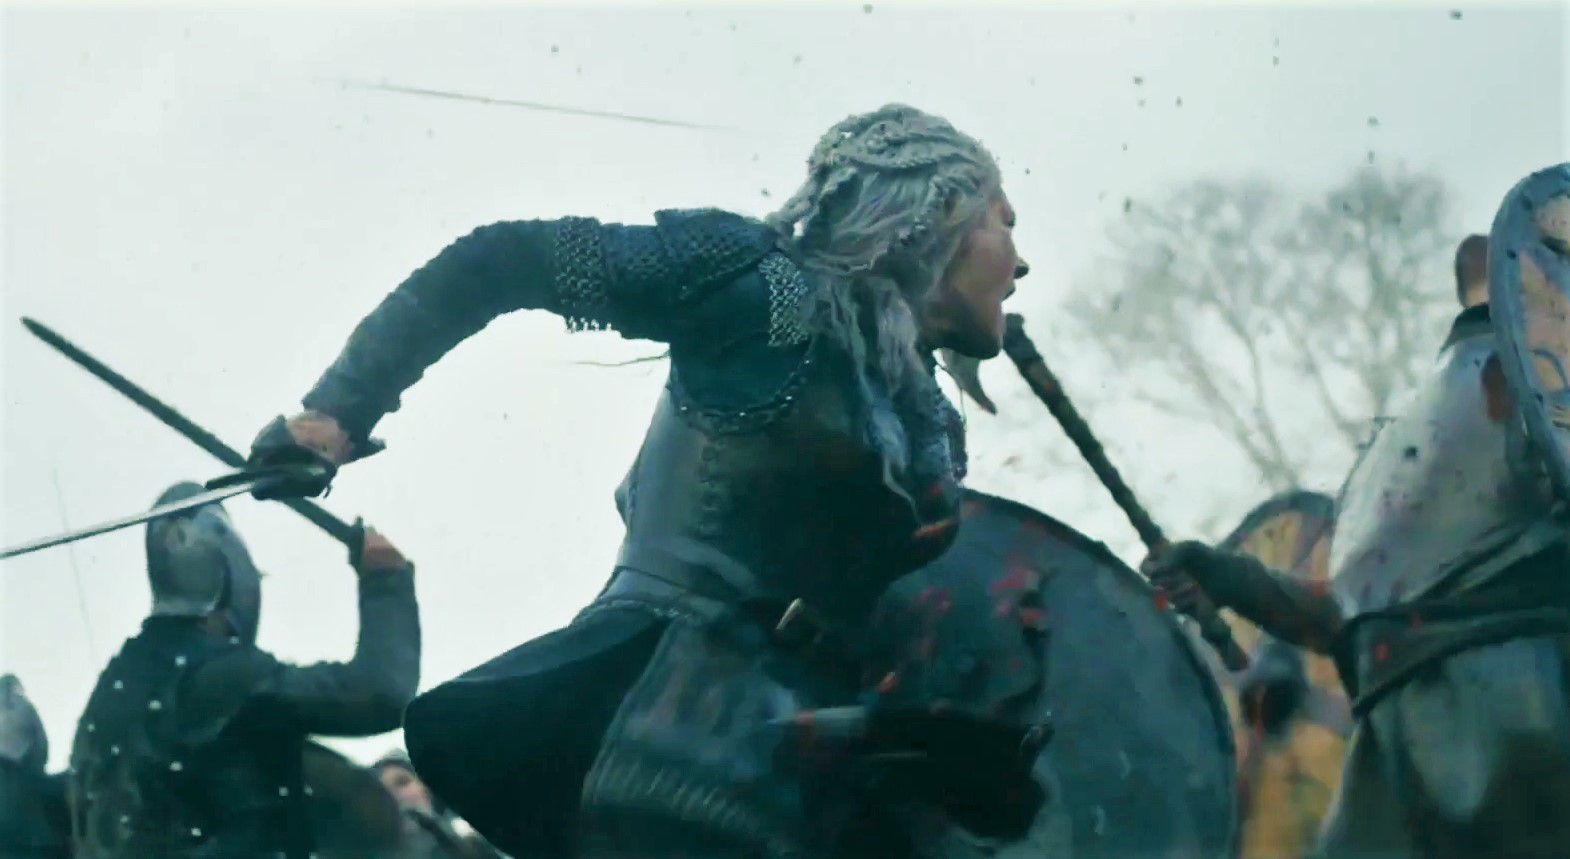 Vikings full movie download in italian